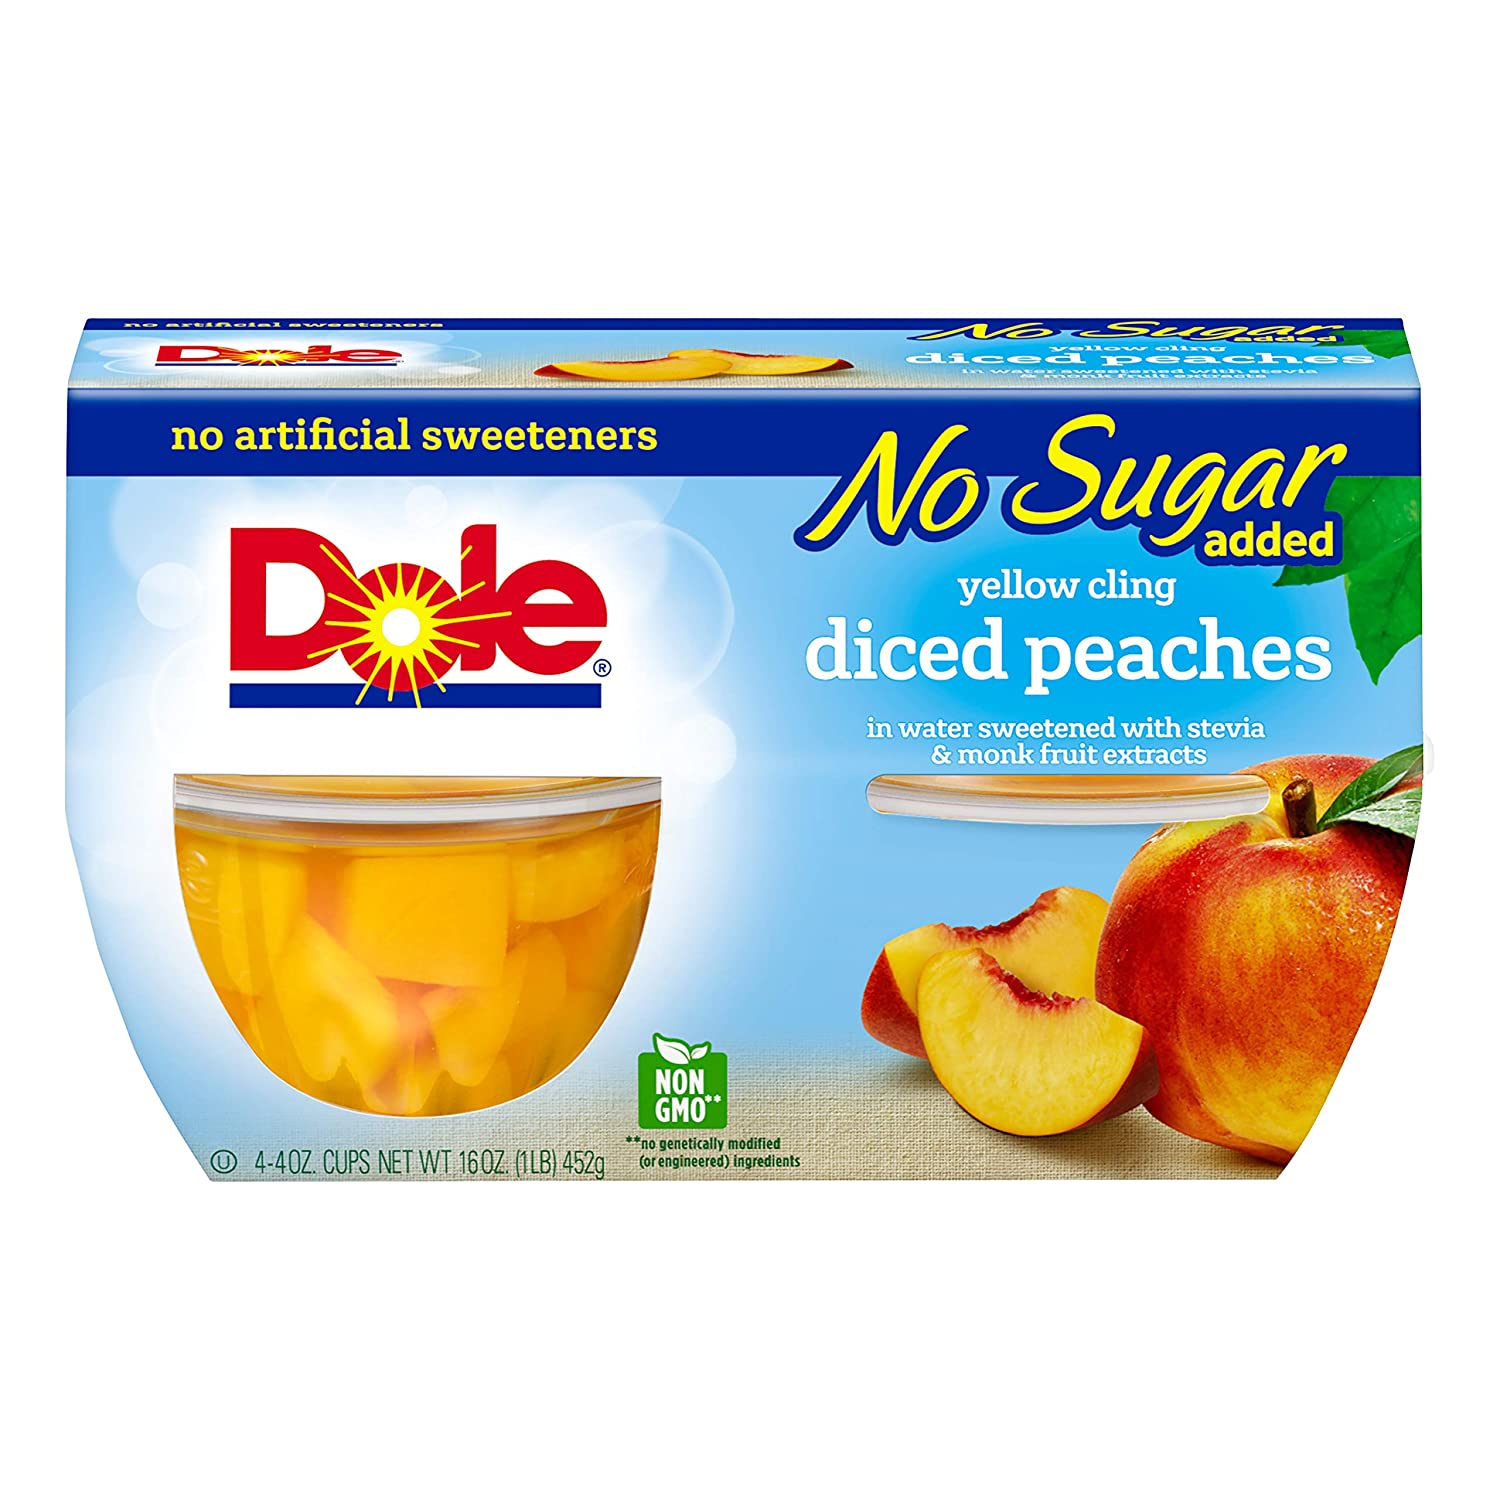 Dole, Diced Peaches No Sugar Added, 16 Oz (pack of 4)